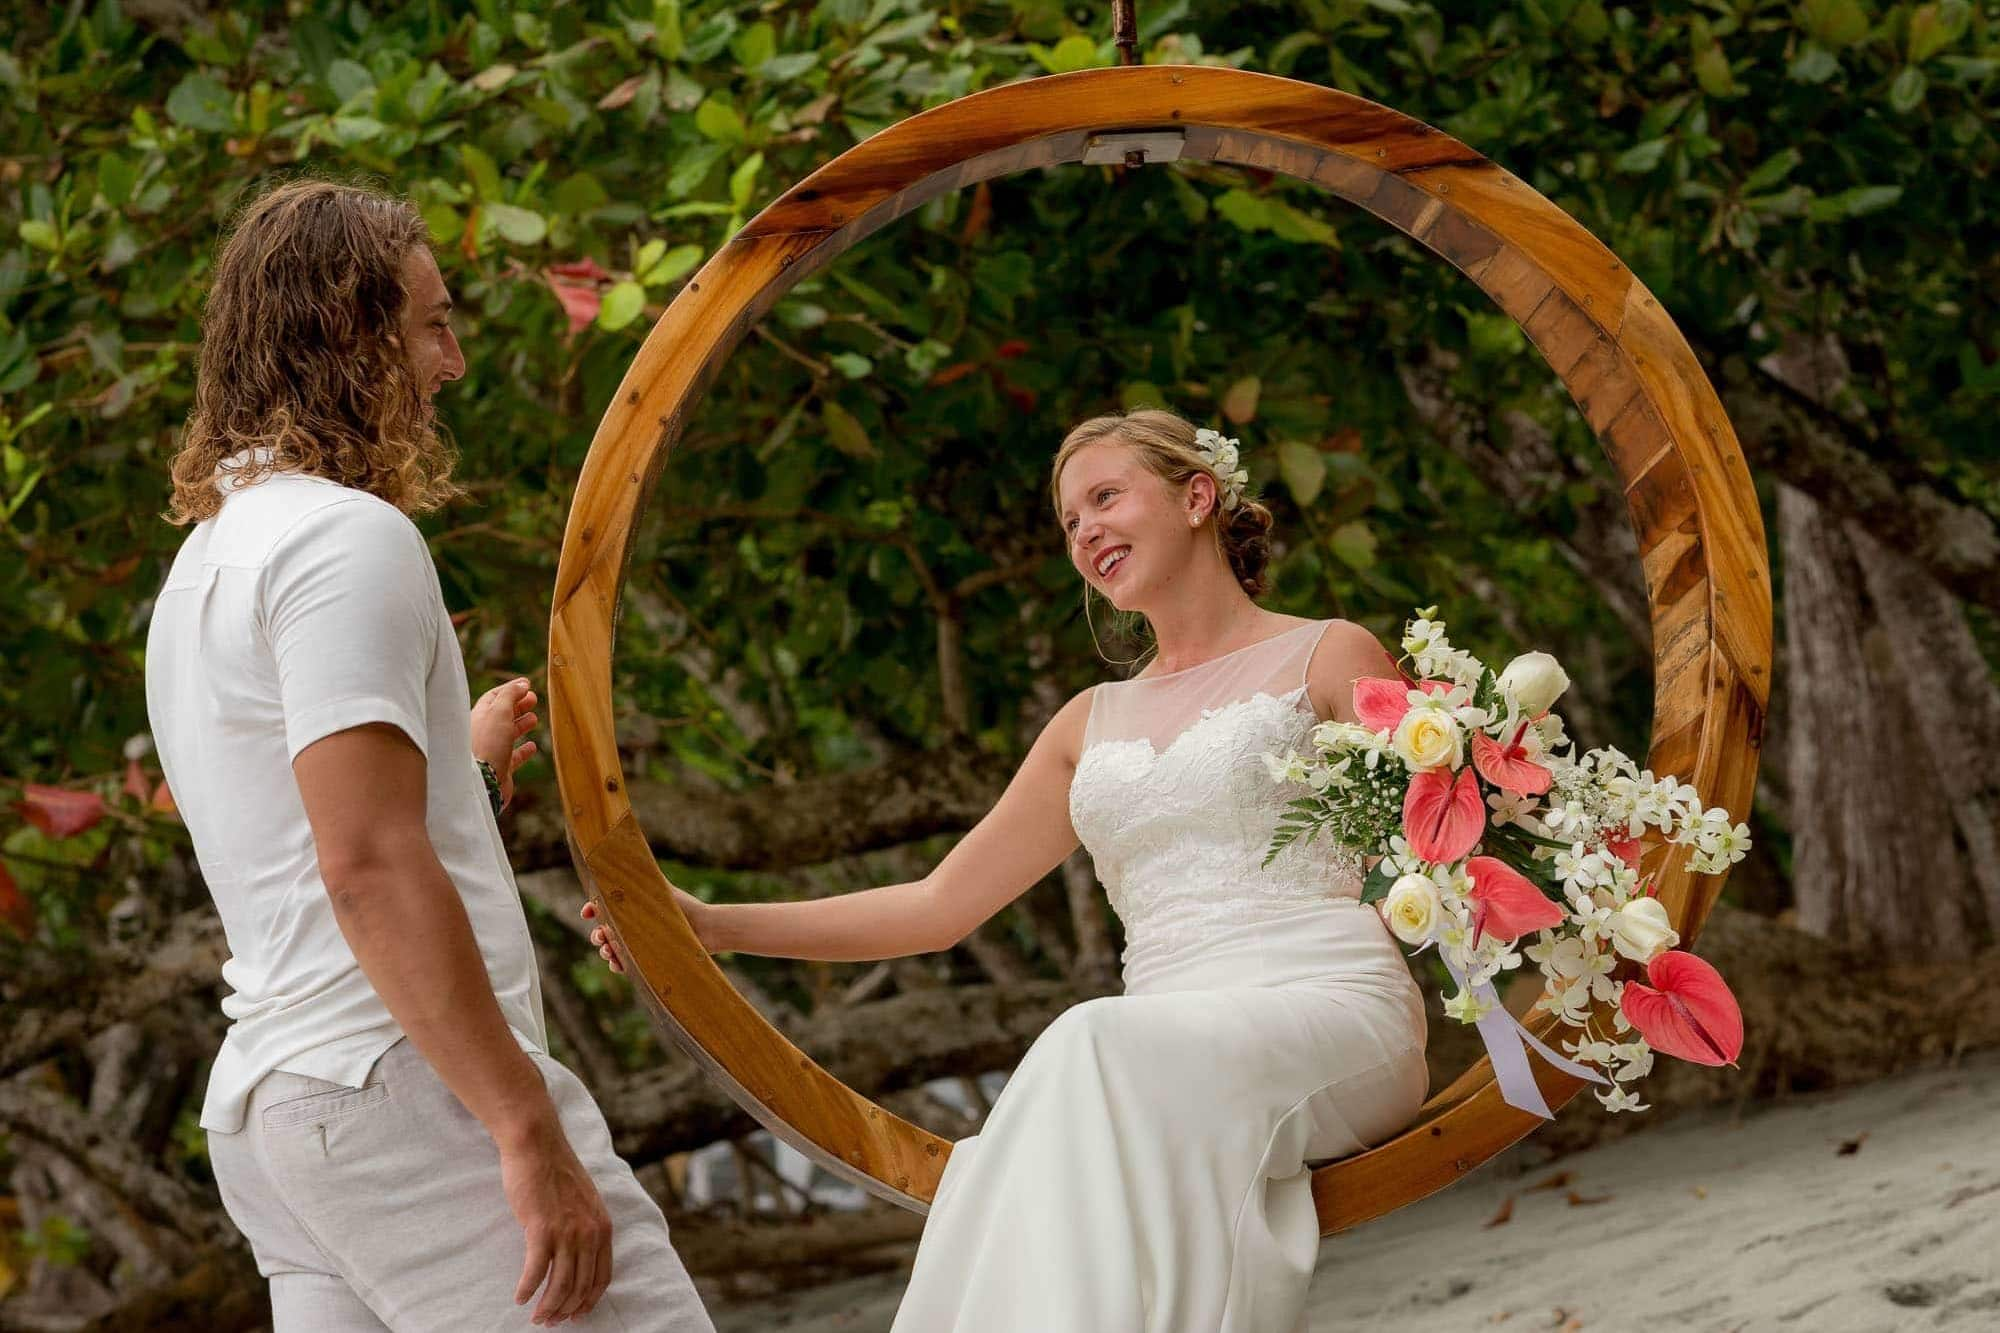 Bride seated in a circle swing with groom at her side